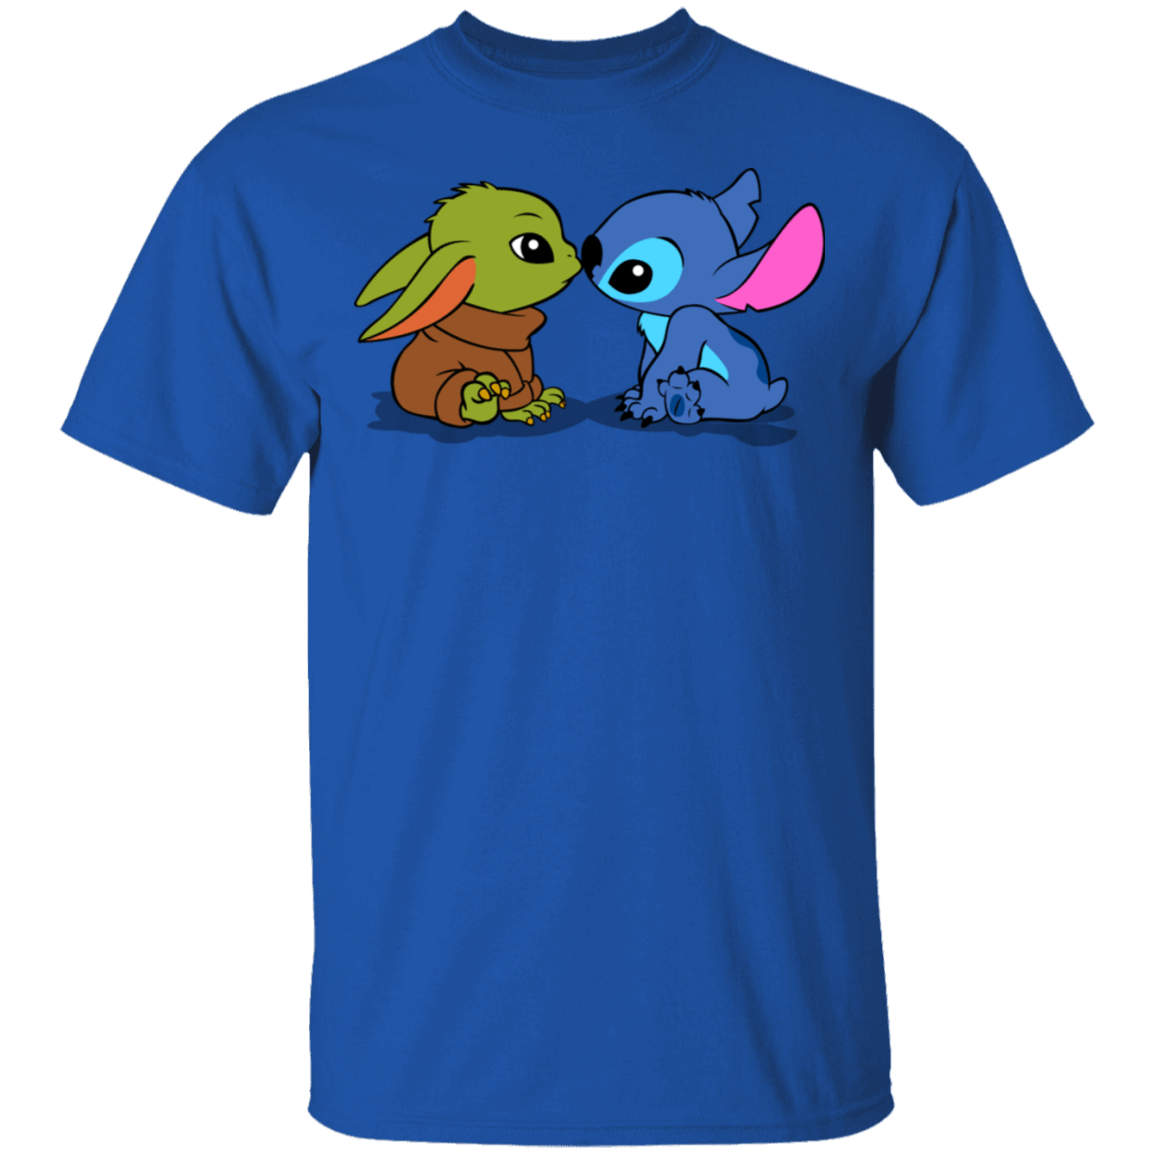 T-Shirts Royal / S Stitch Yoda Baby T-Shirt